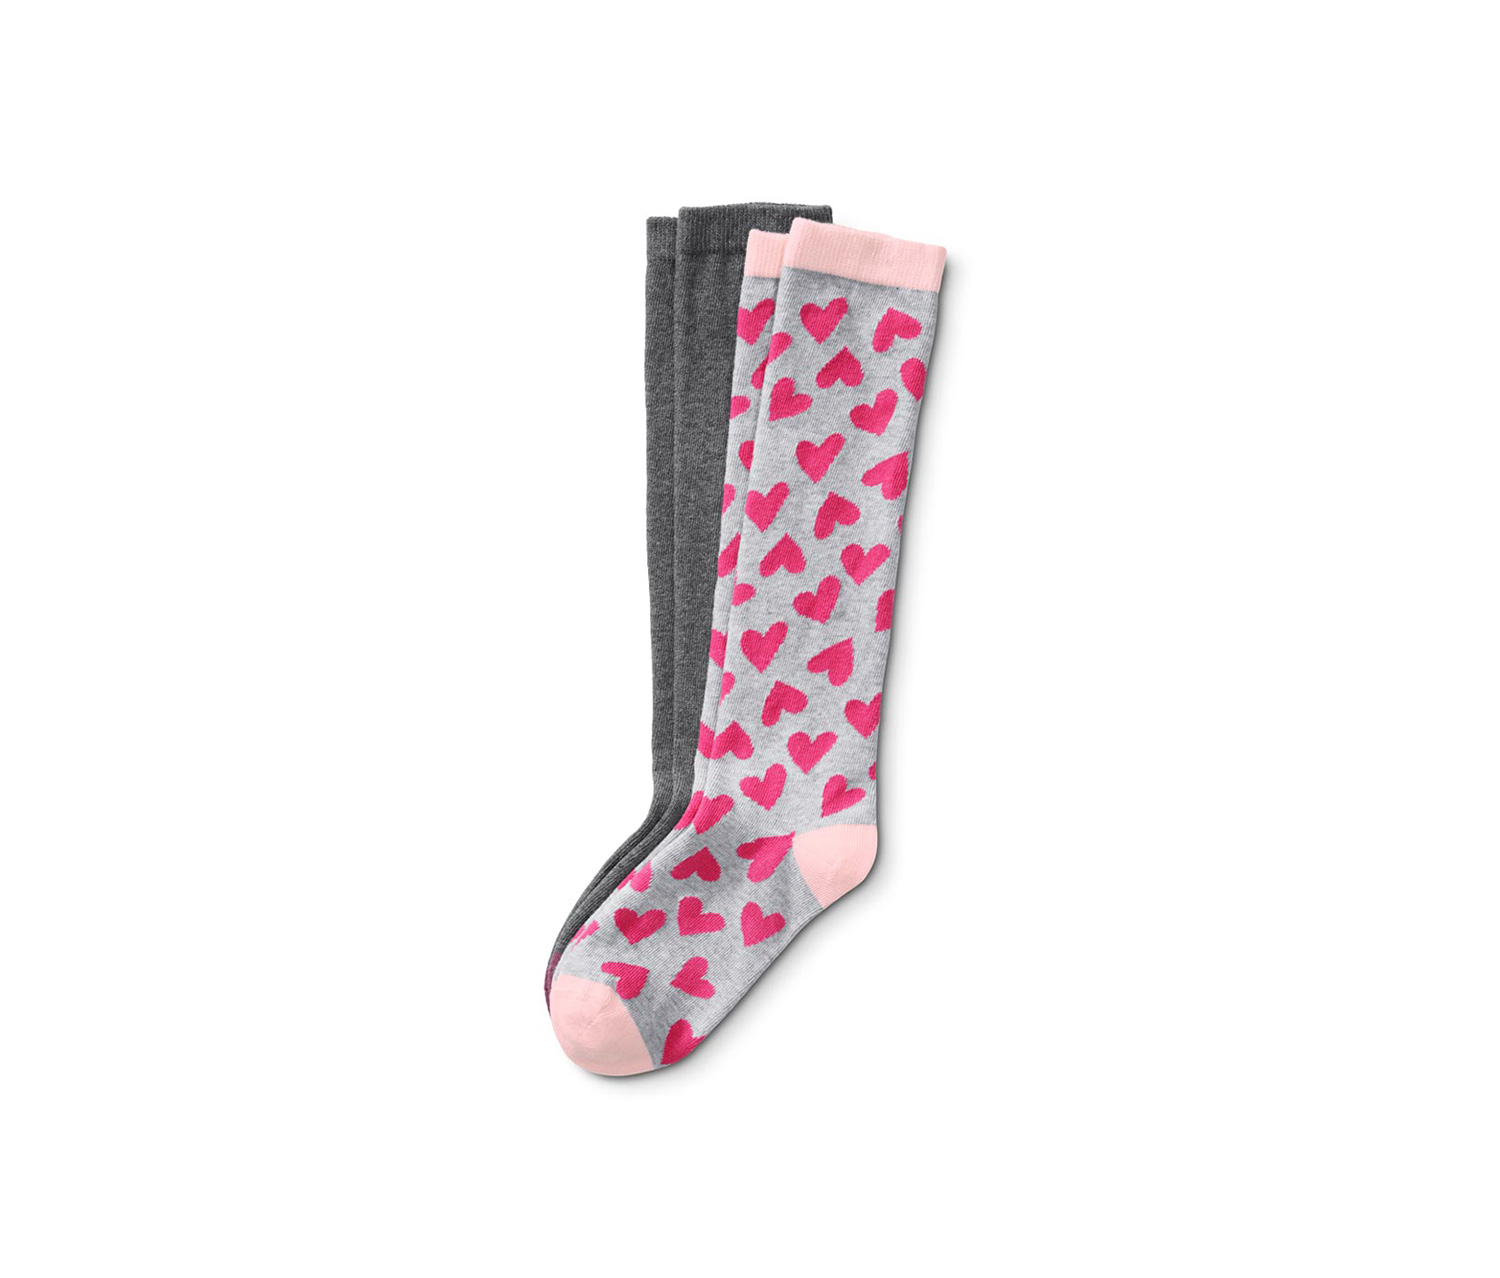 Girl's Knee Socks, Grey/Pink